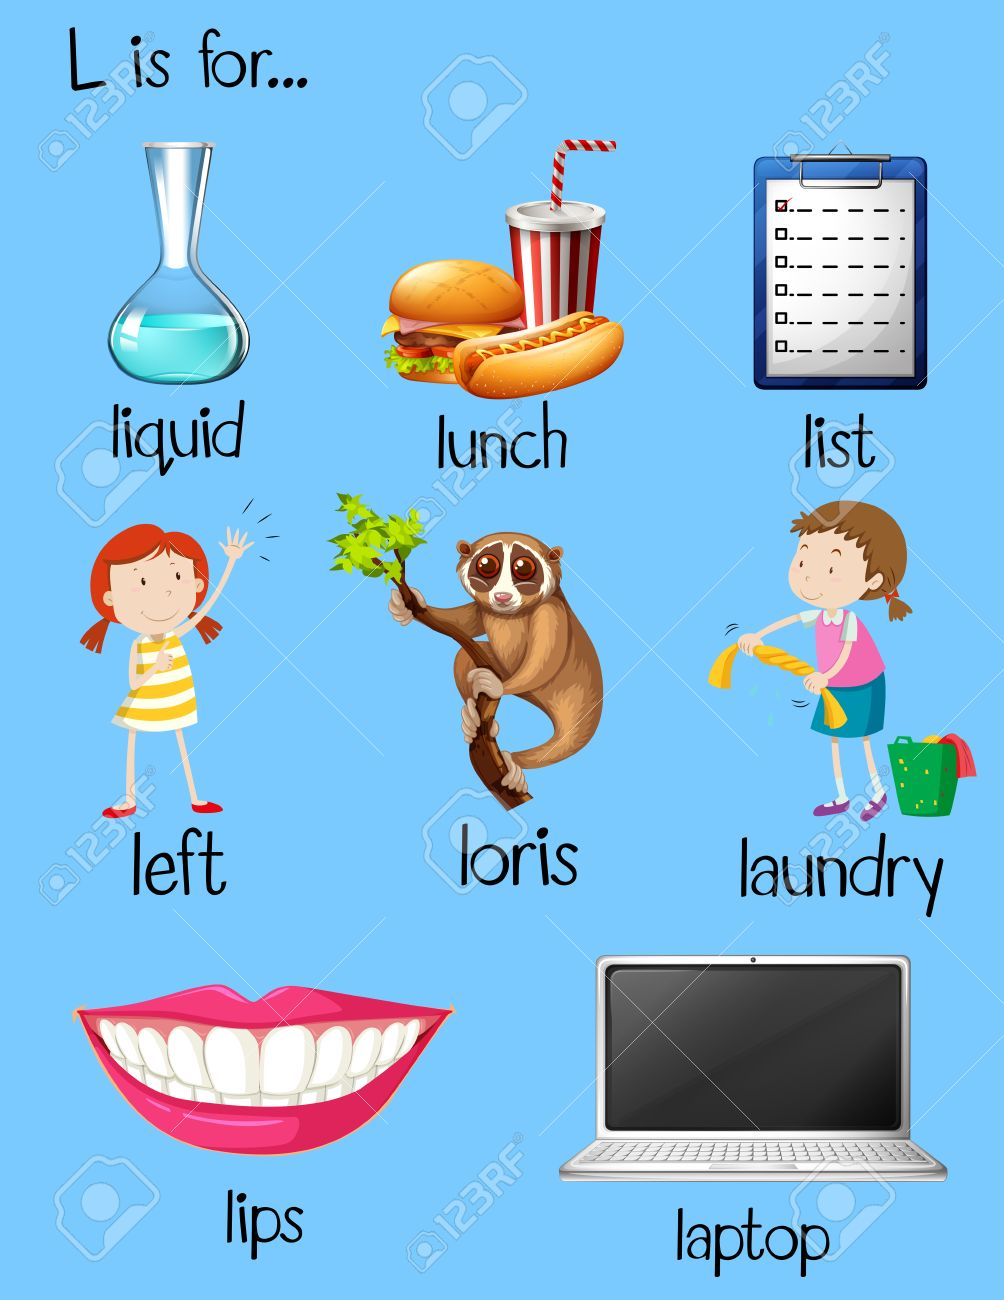 many words begin with letter l illustration royalty free cliparts